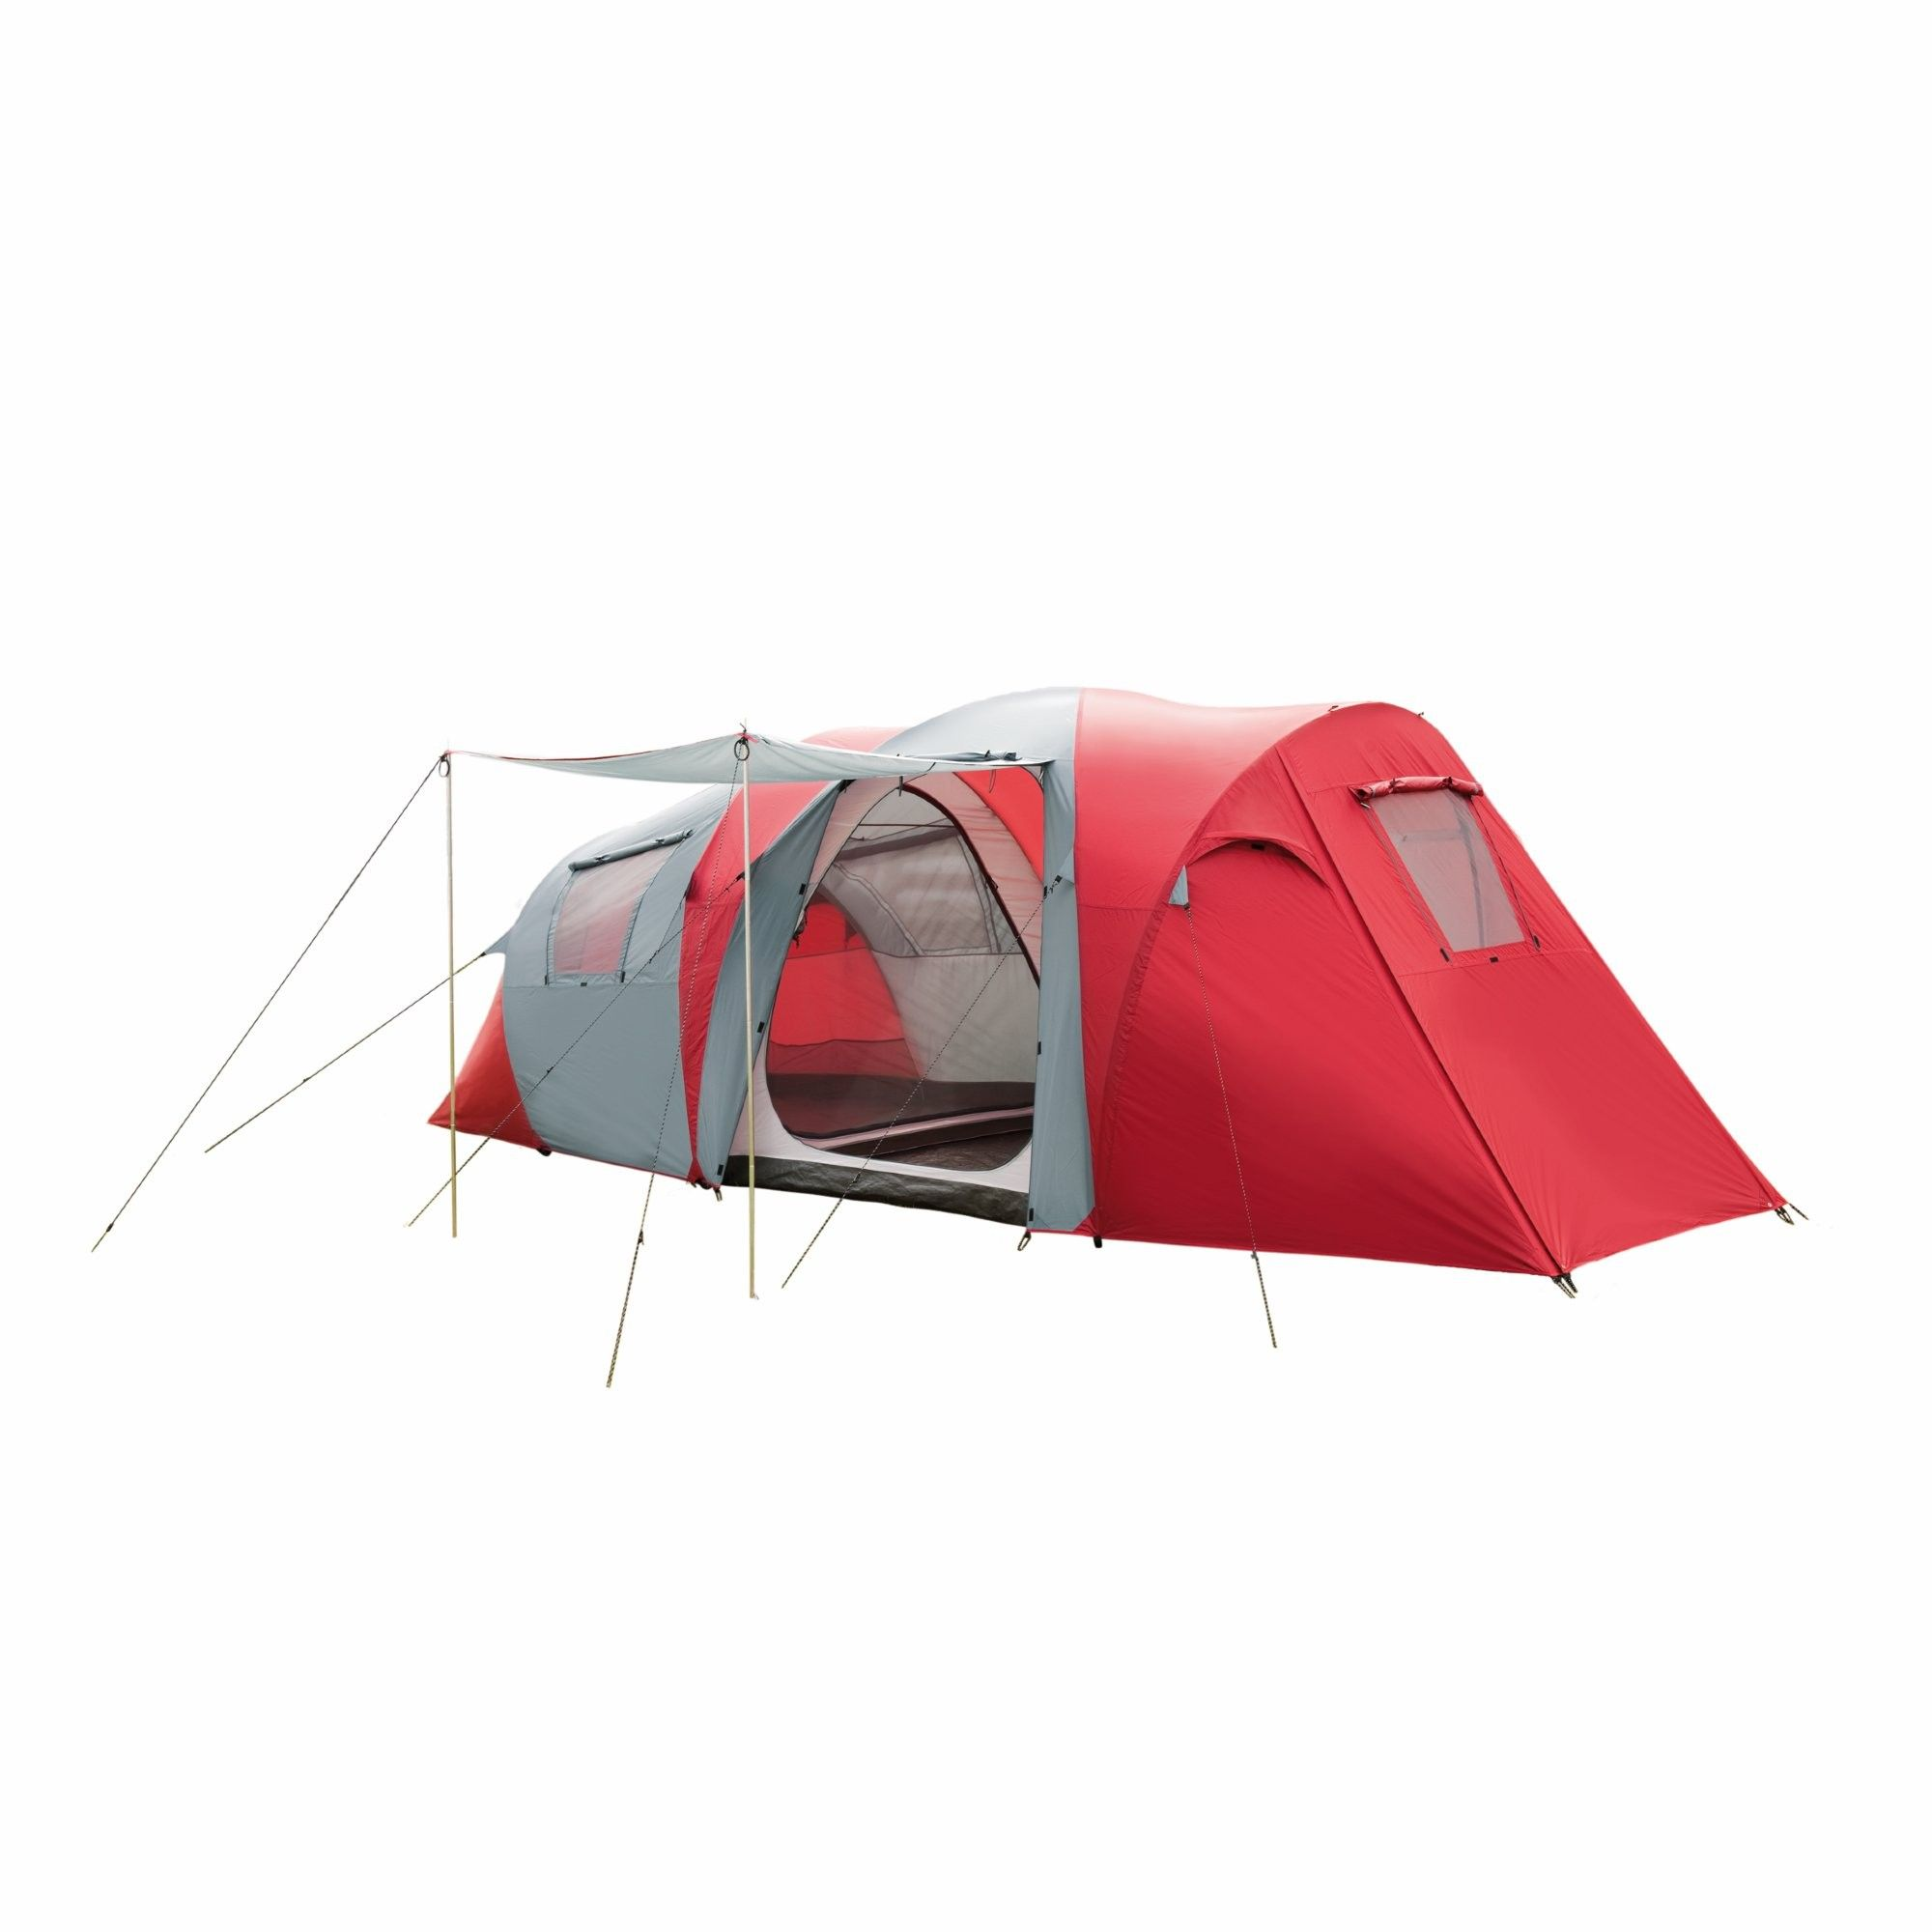 The Retreat 270 Tent delivers the perfect balance of durable weatherproof construction and spacious comfort for your c&ing holidays.  sc 1 st  Pinterest & Red Grey | Camping | Pinterest | Tents